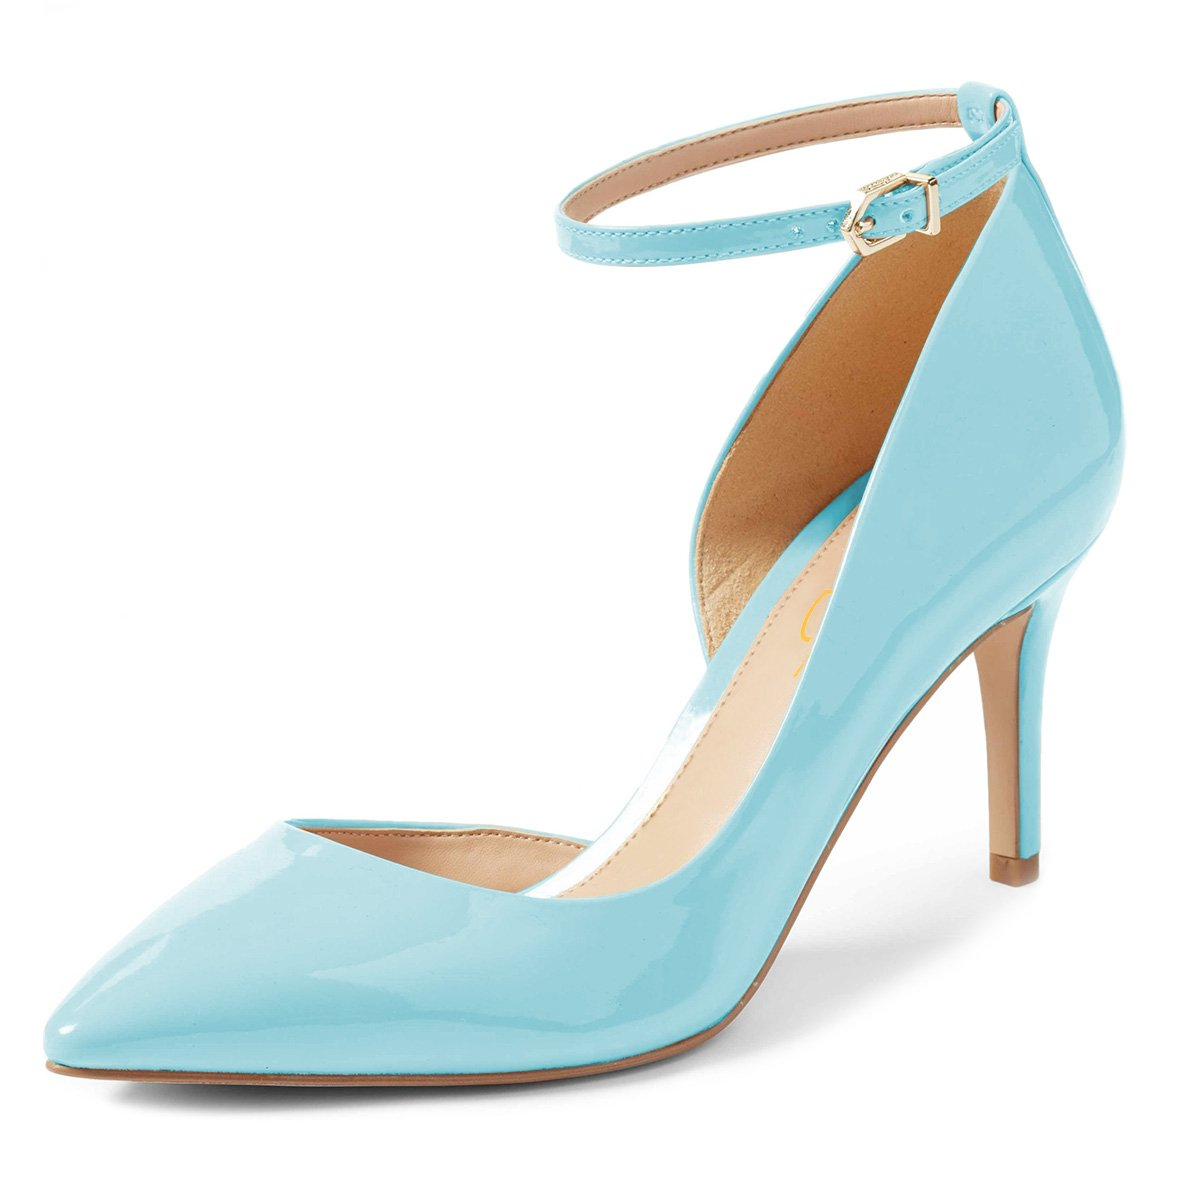 XYD Women Pointed Toe D'Orsay Mid Heel Pumps Ankle Strap Buckled Wedding Party Dress Shoes B078XPC5PC 11 B(M) US|Light Blue